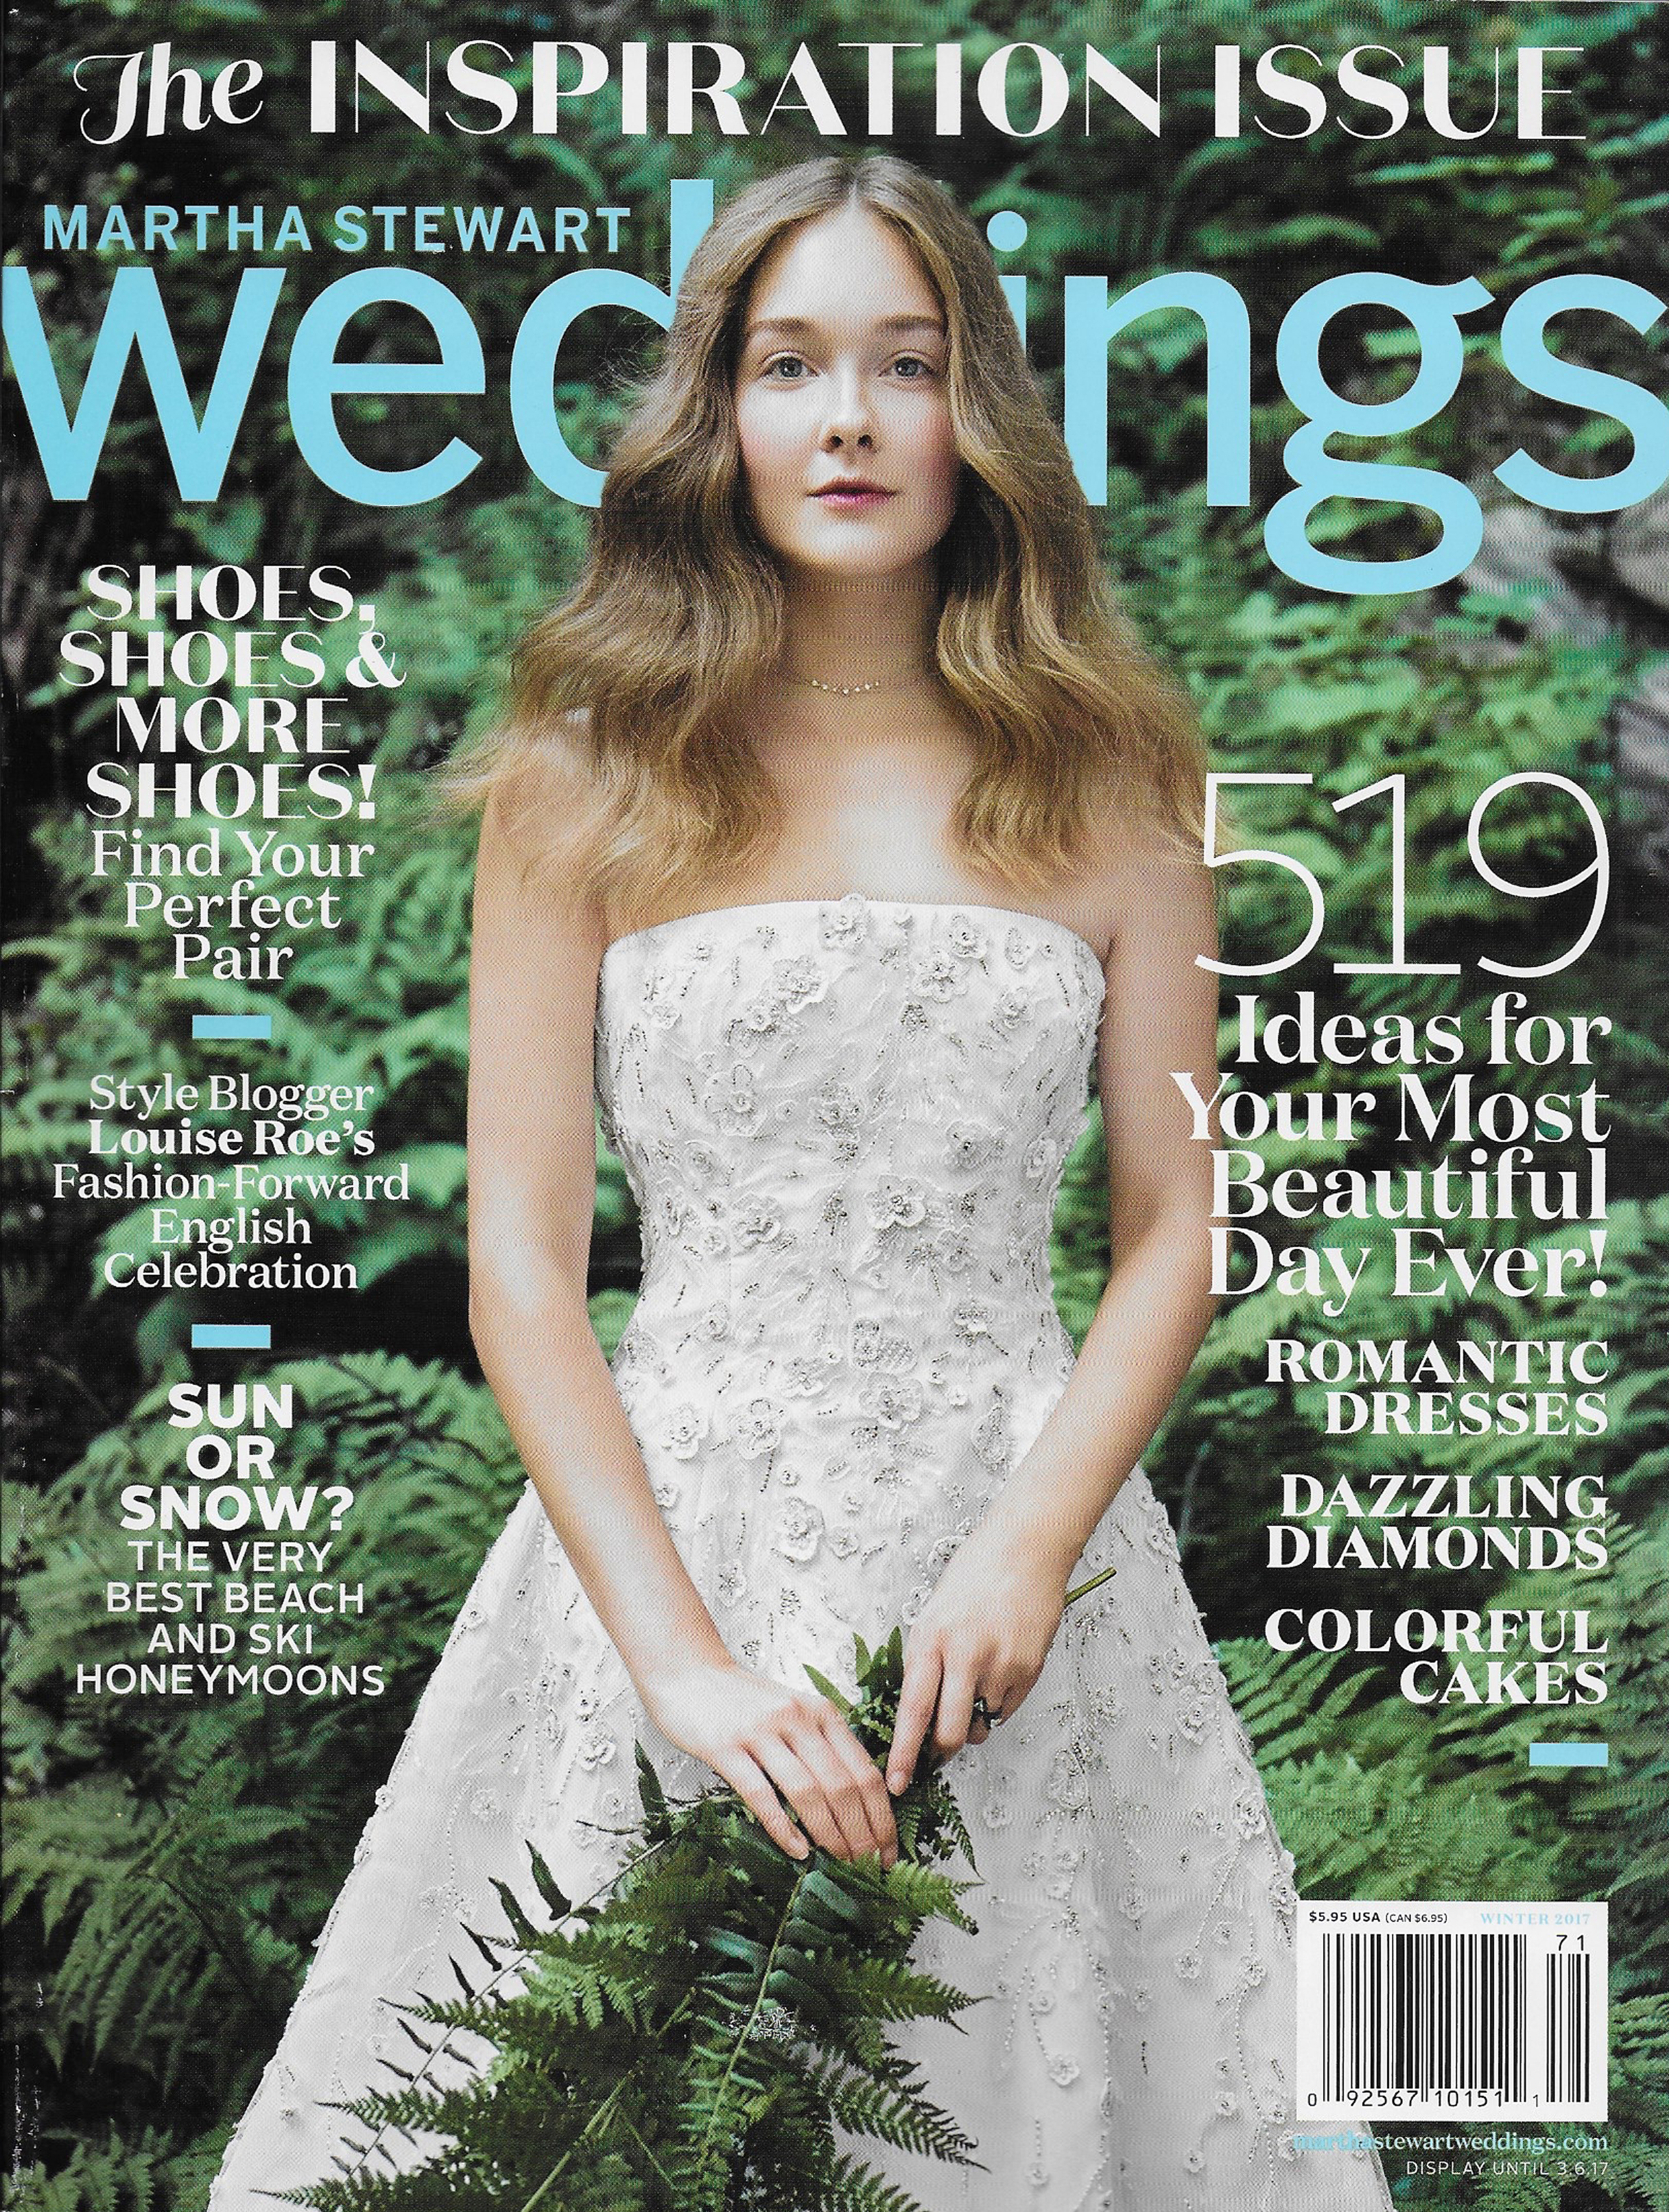 MS MAG COVER .jpg